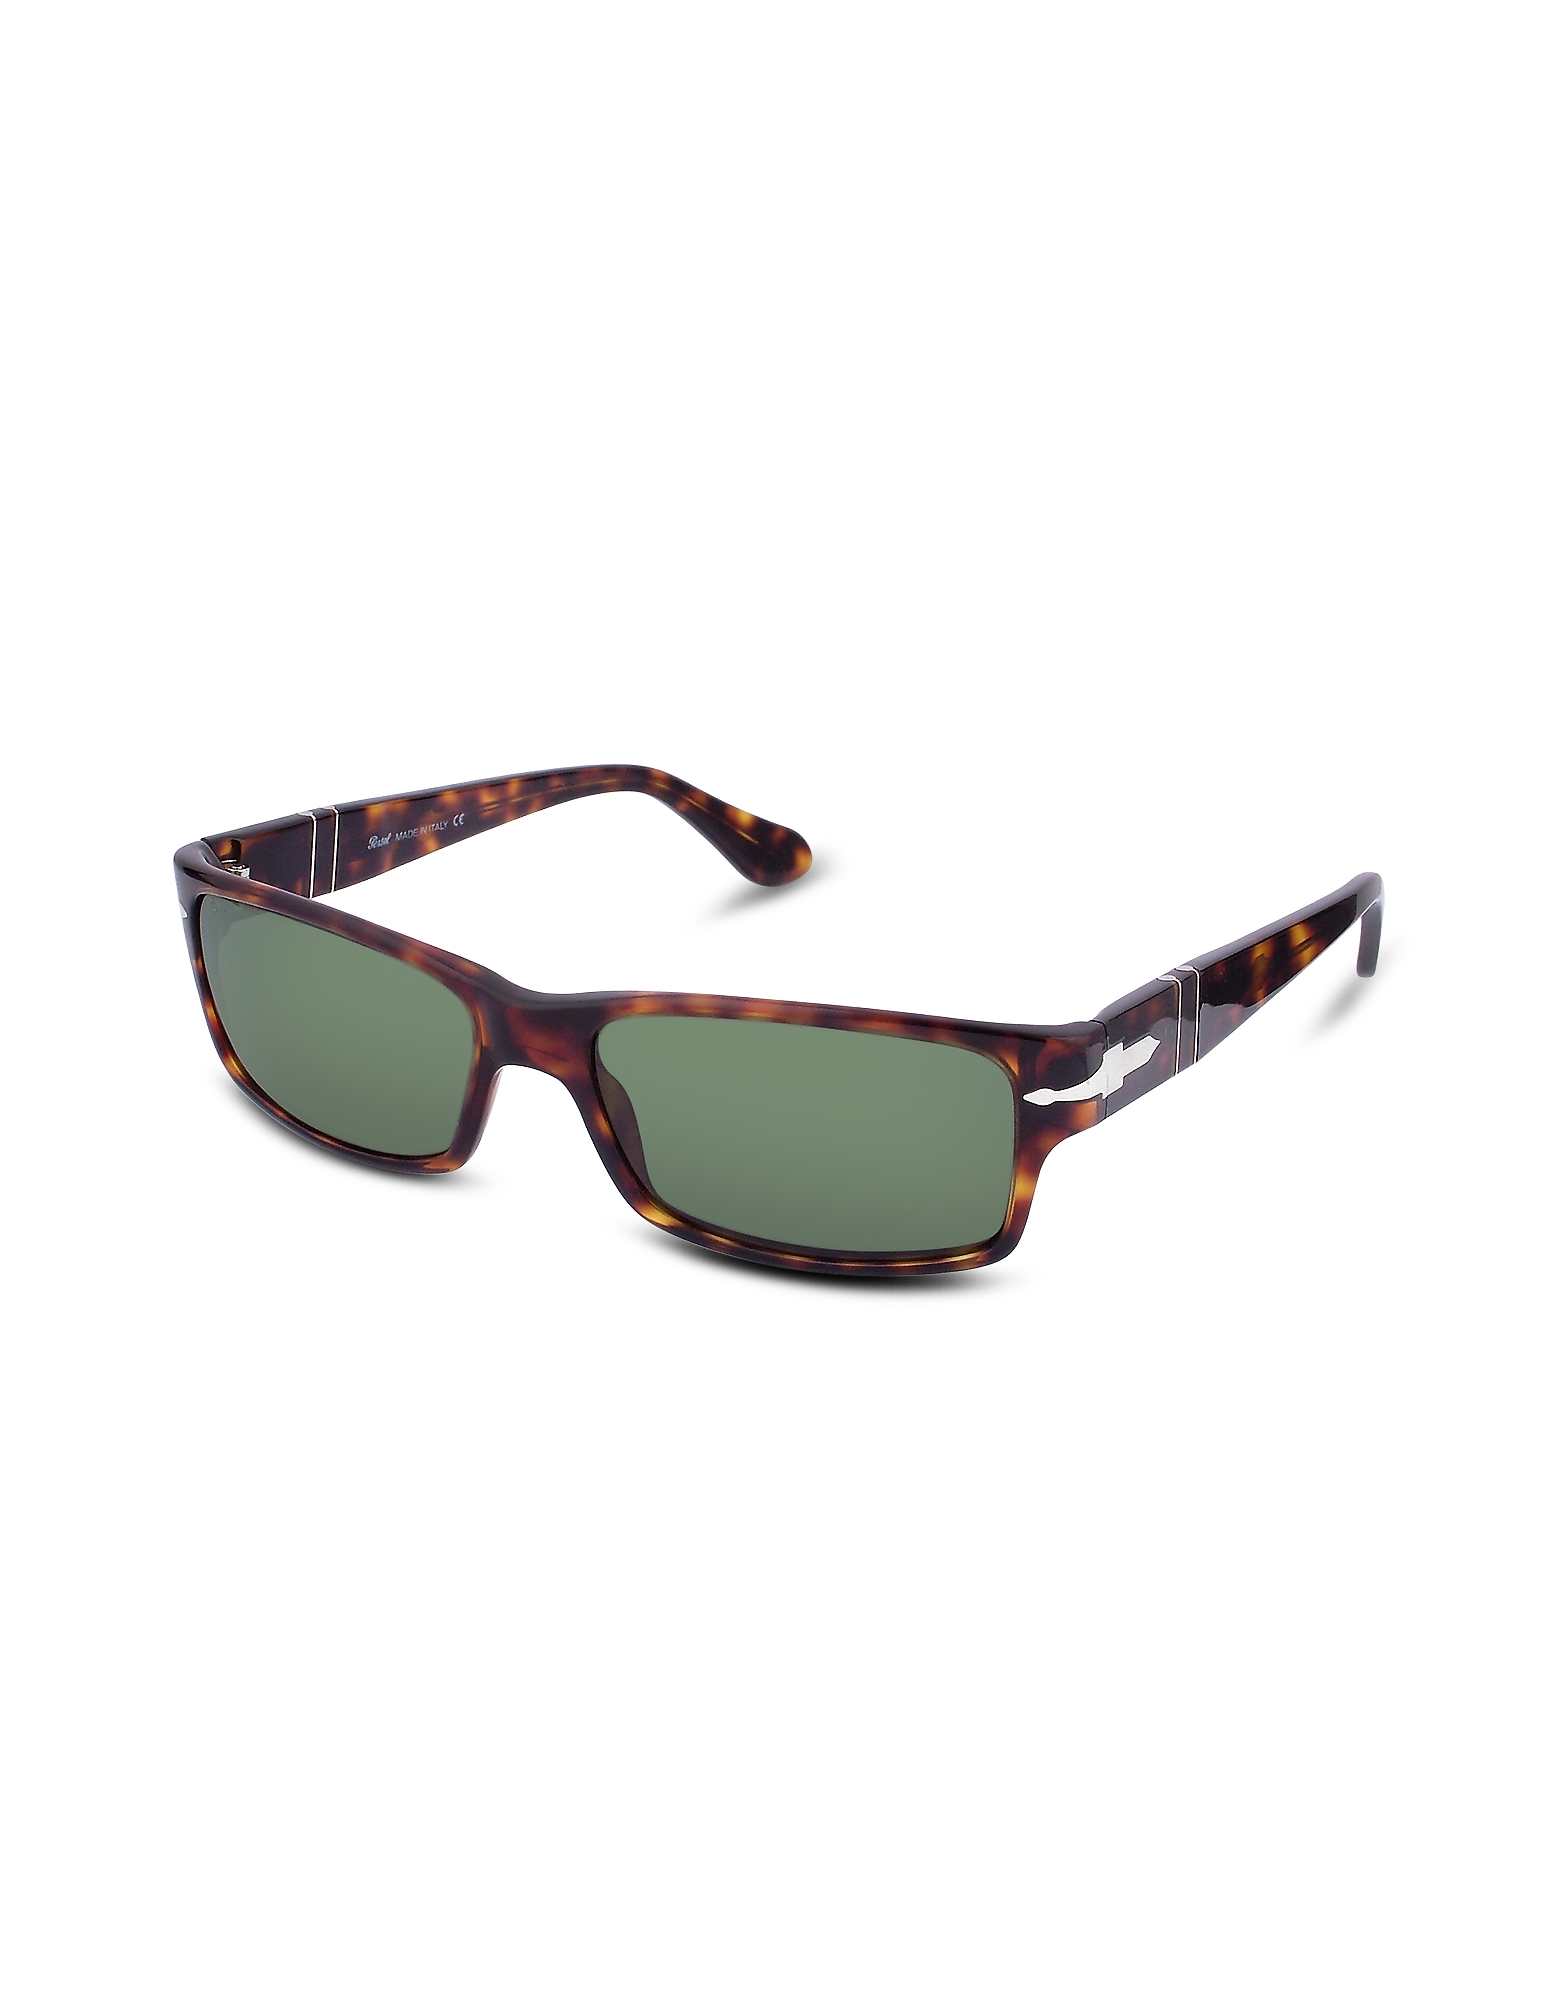 Persol Sunglasses, Arrow Signature Rectangular Plastic Sunglasses